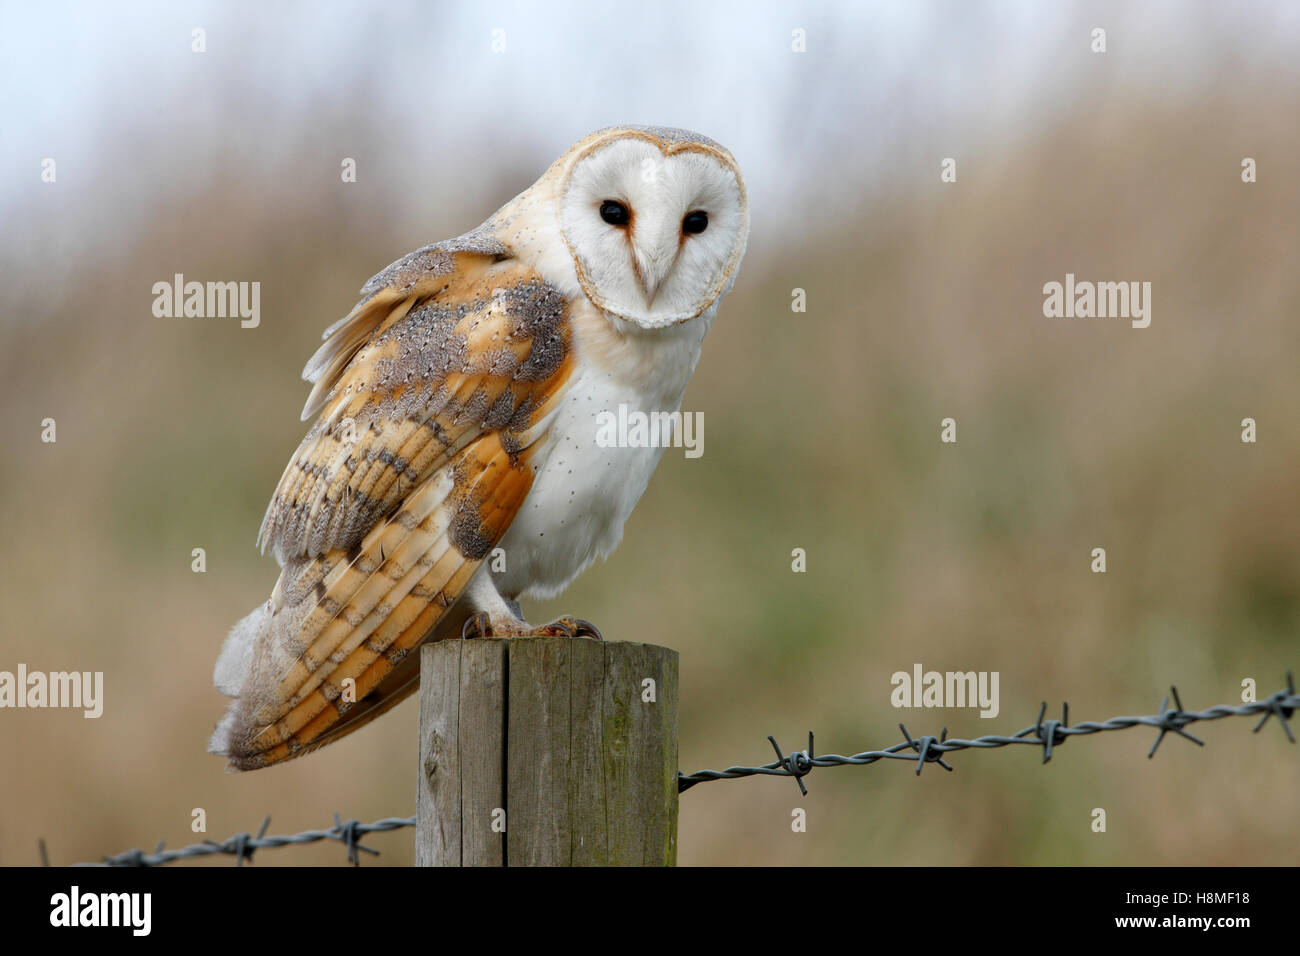 Barn Owl Tyto alba perched on a roadside fence post - Stock Image